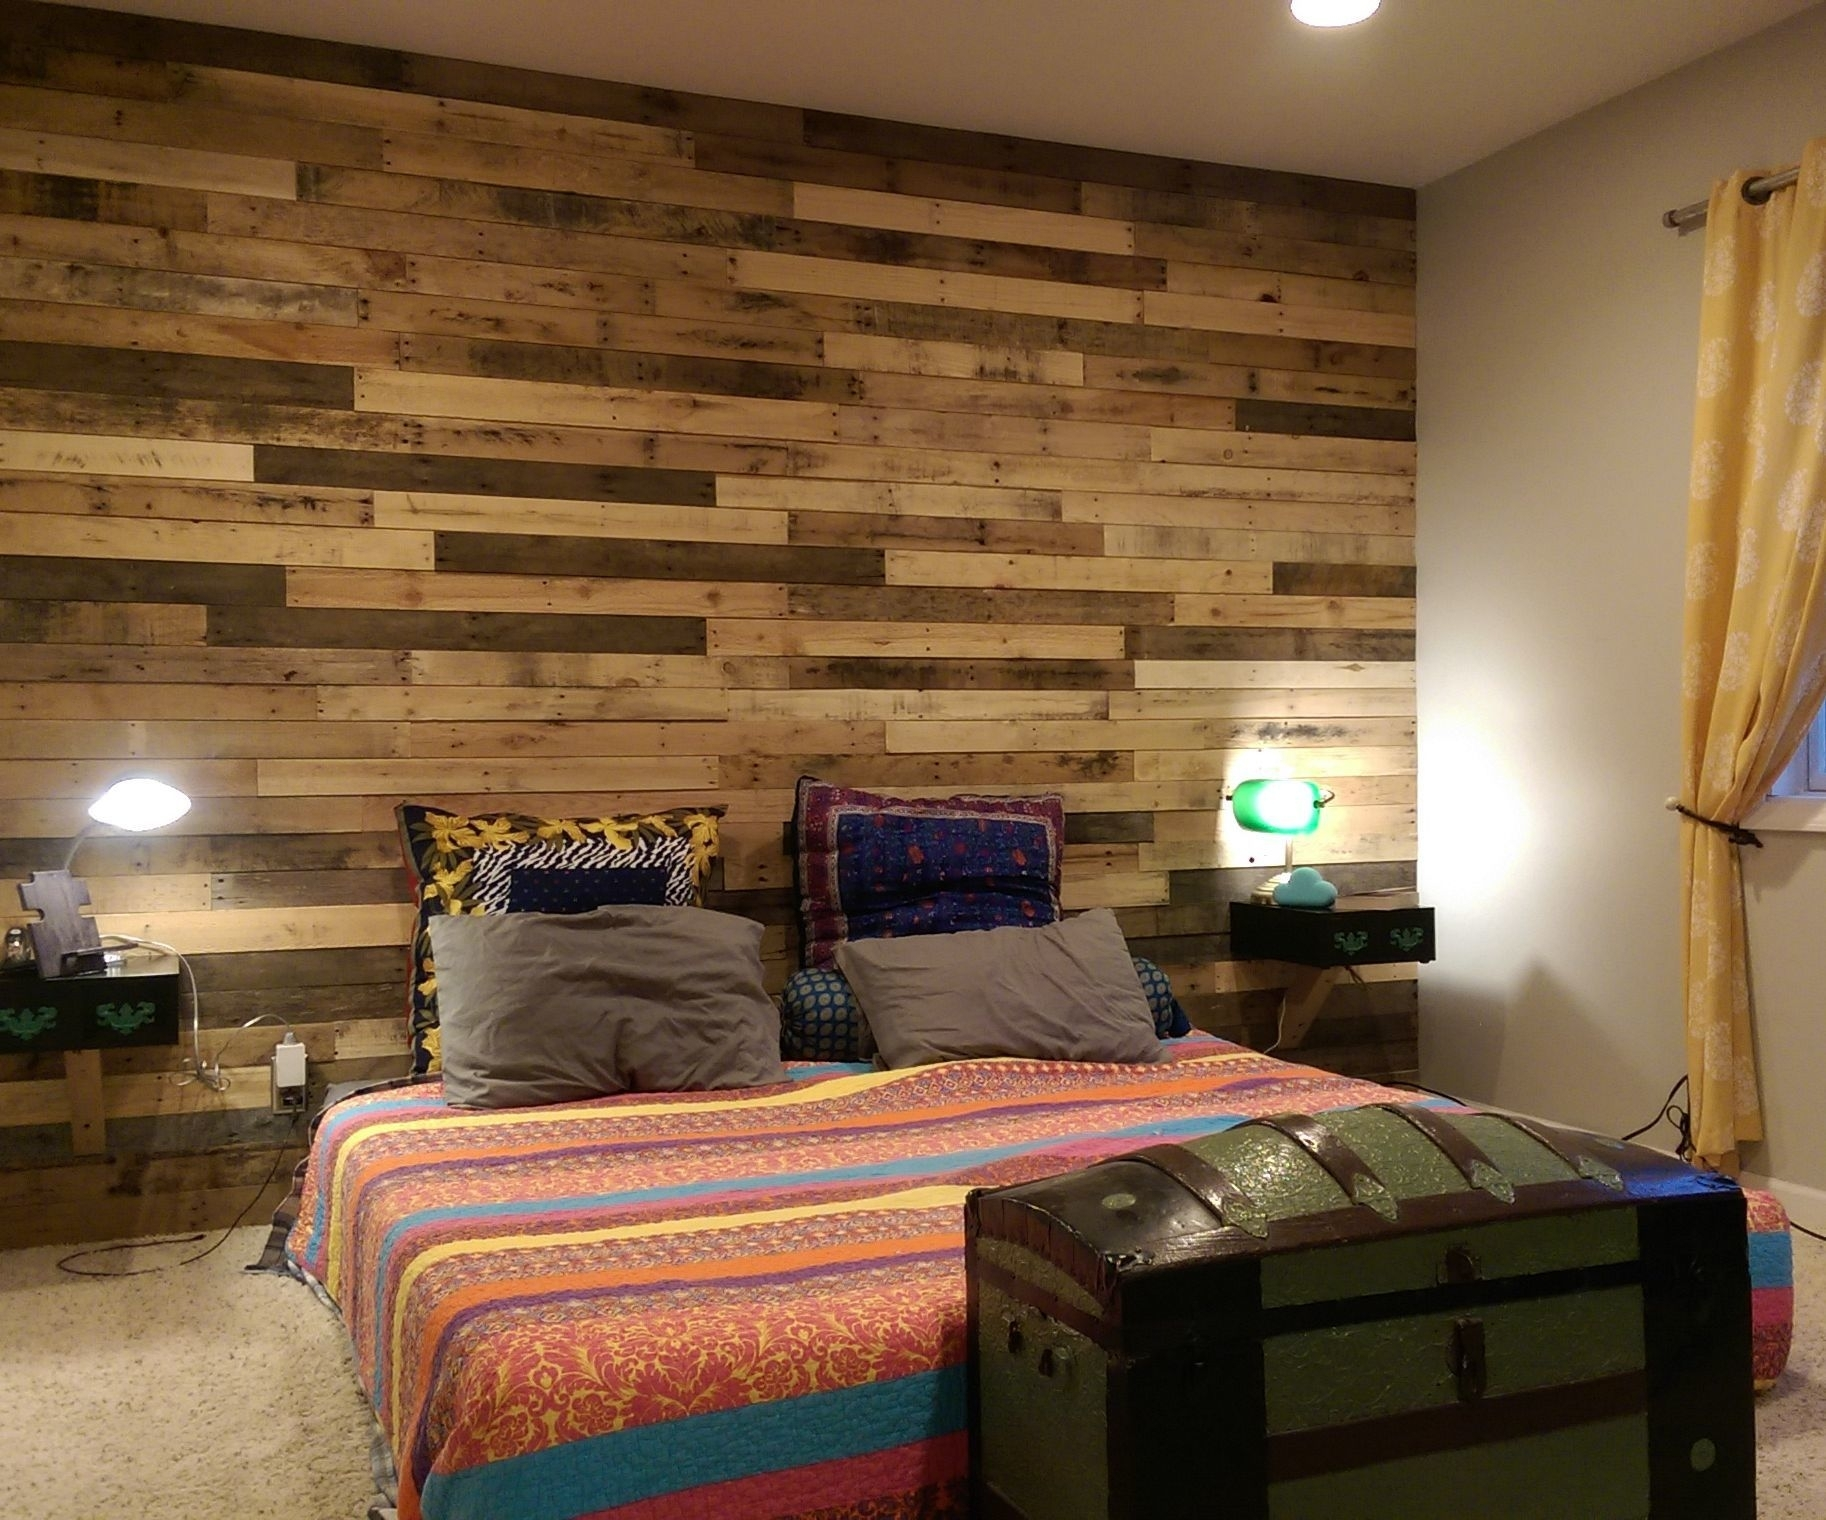 Pallet Accent Wall: 4 Steps (With Pictures) Throughout 2017 Wall Accents For Bedroom (View 13 of 15)